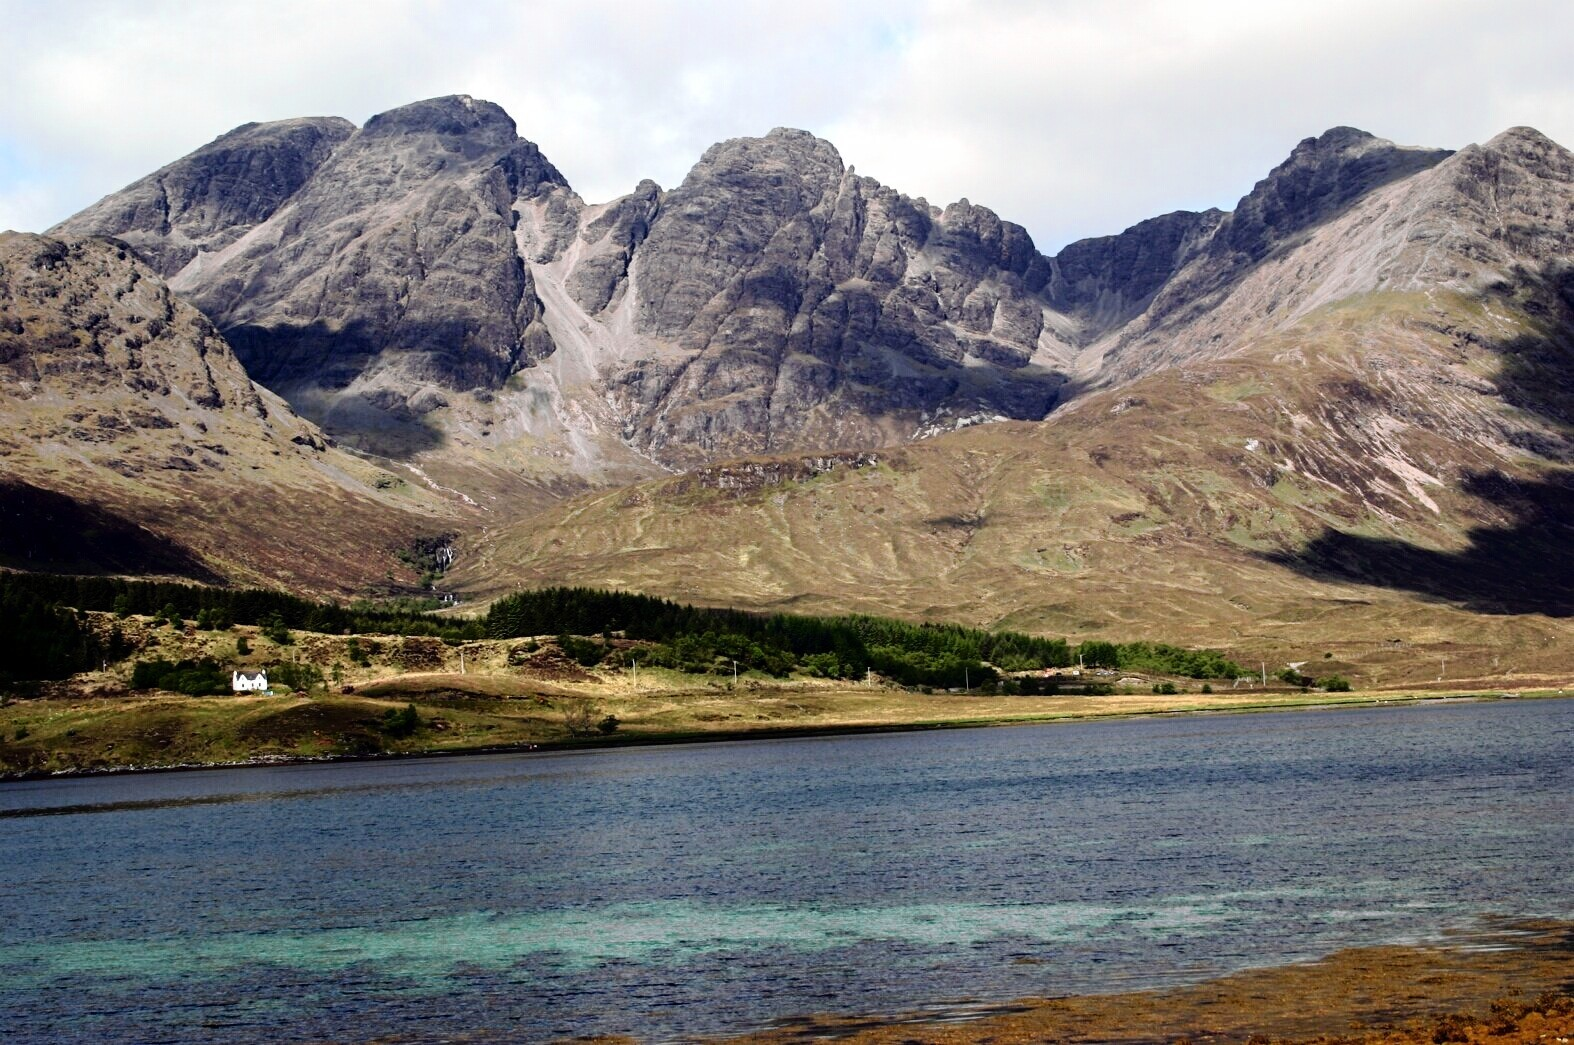 Loch Scavaig in the south west of the island.